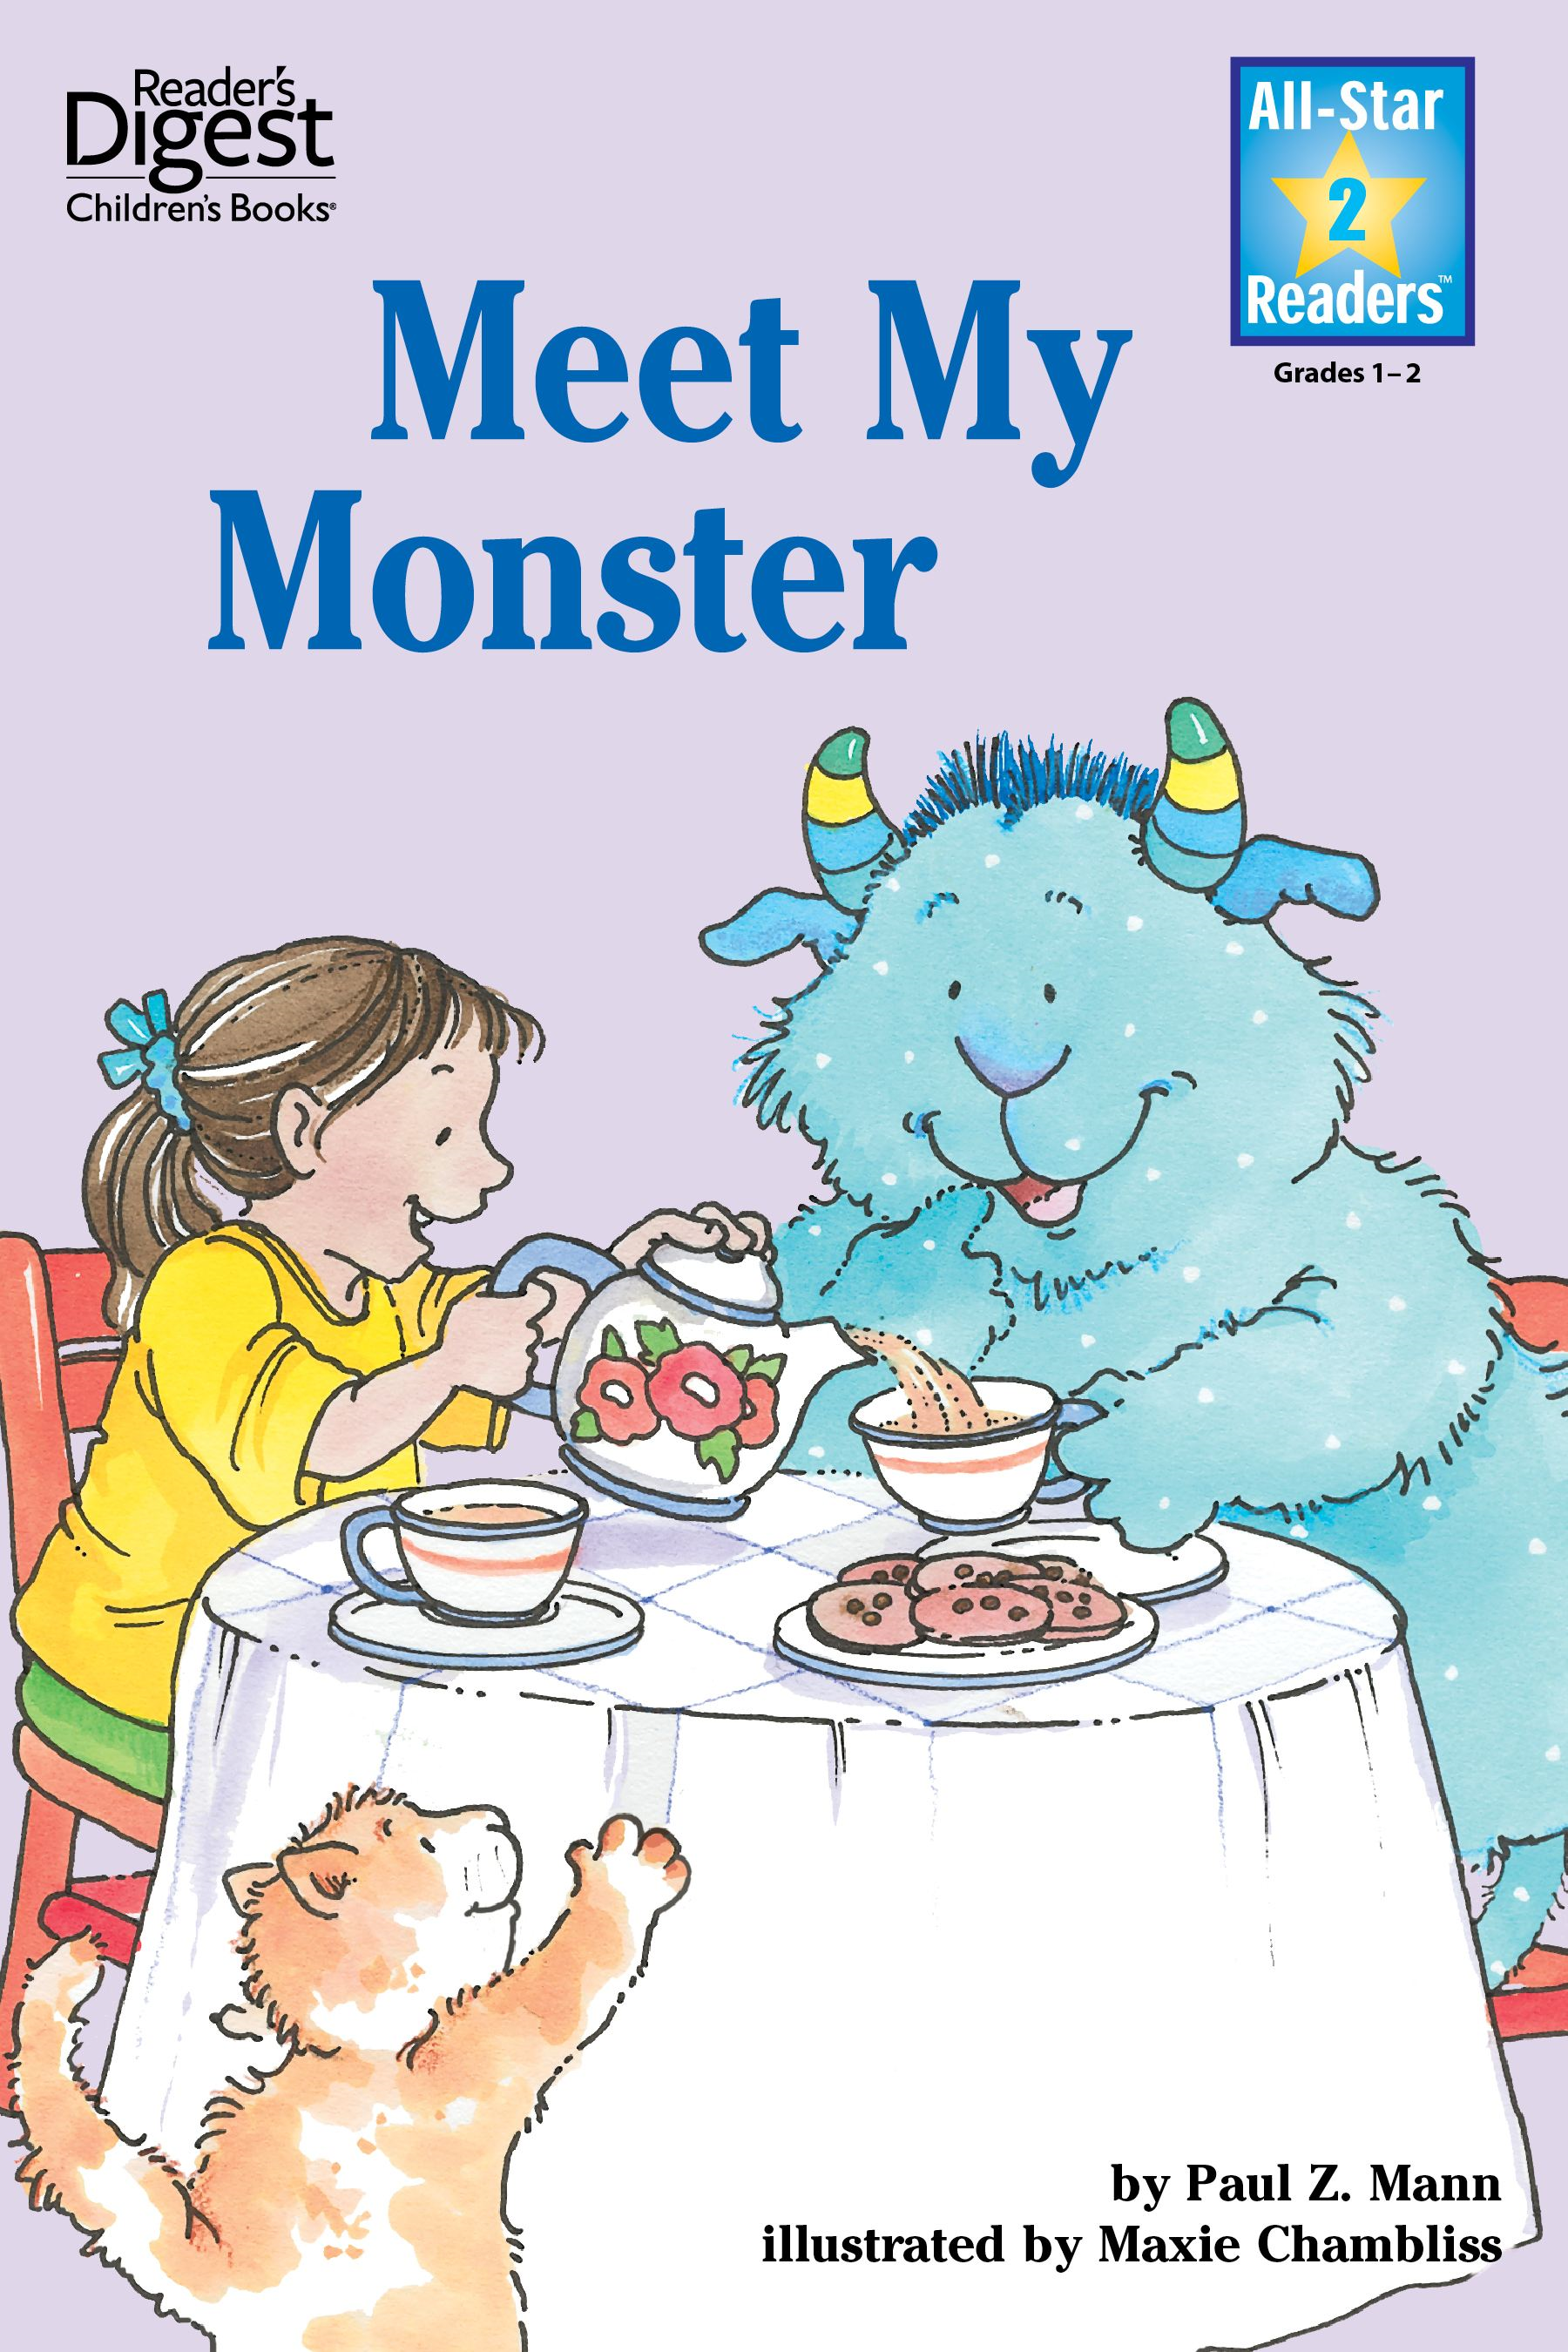 Meet My Monster (Reader's Digest) (All-Star Readers)